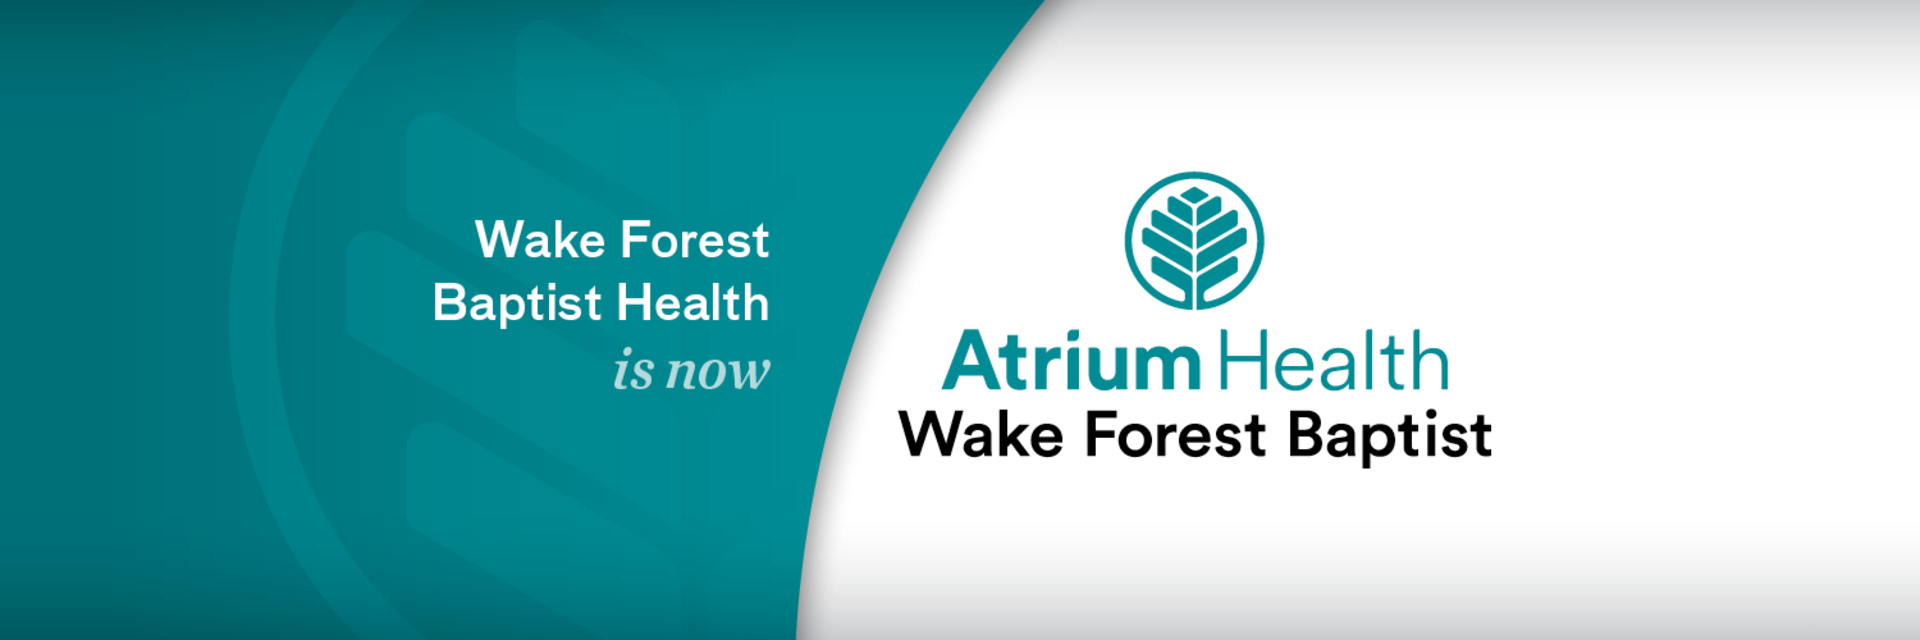 Today Wake Forest Baptist Health and Atrium Health unveiled their strategic combination's new brand, Atrium Health Wake Forest Baptist.